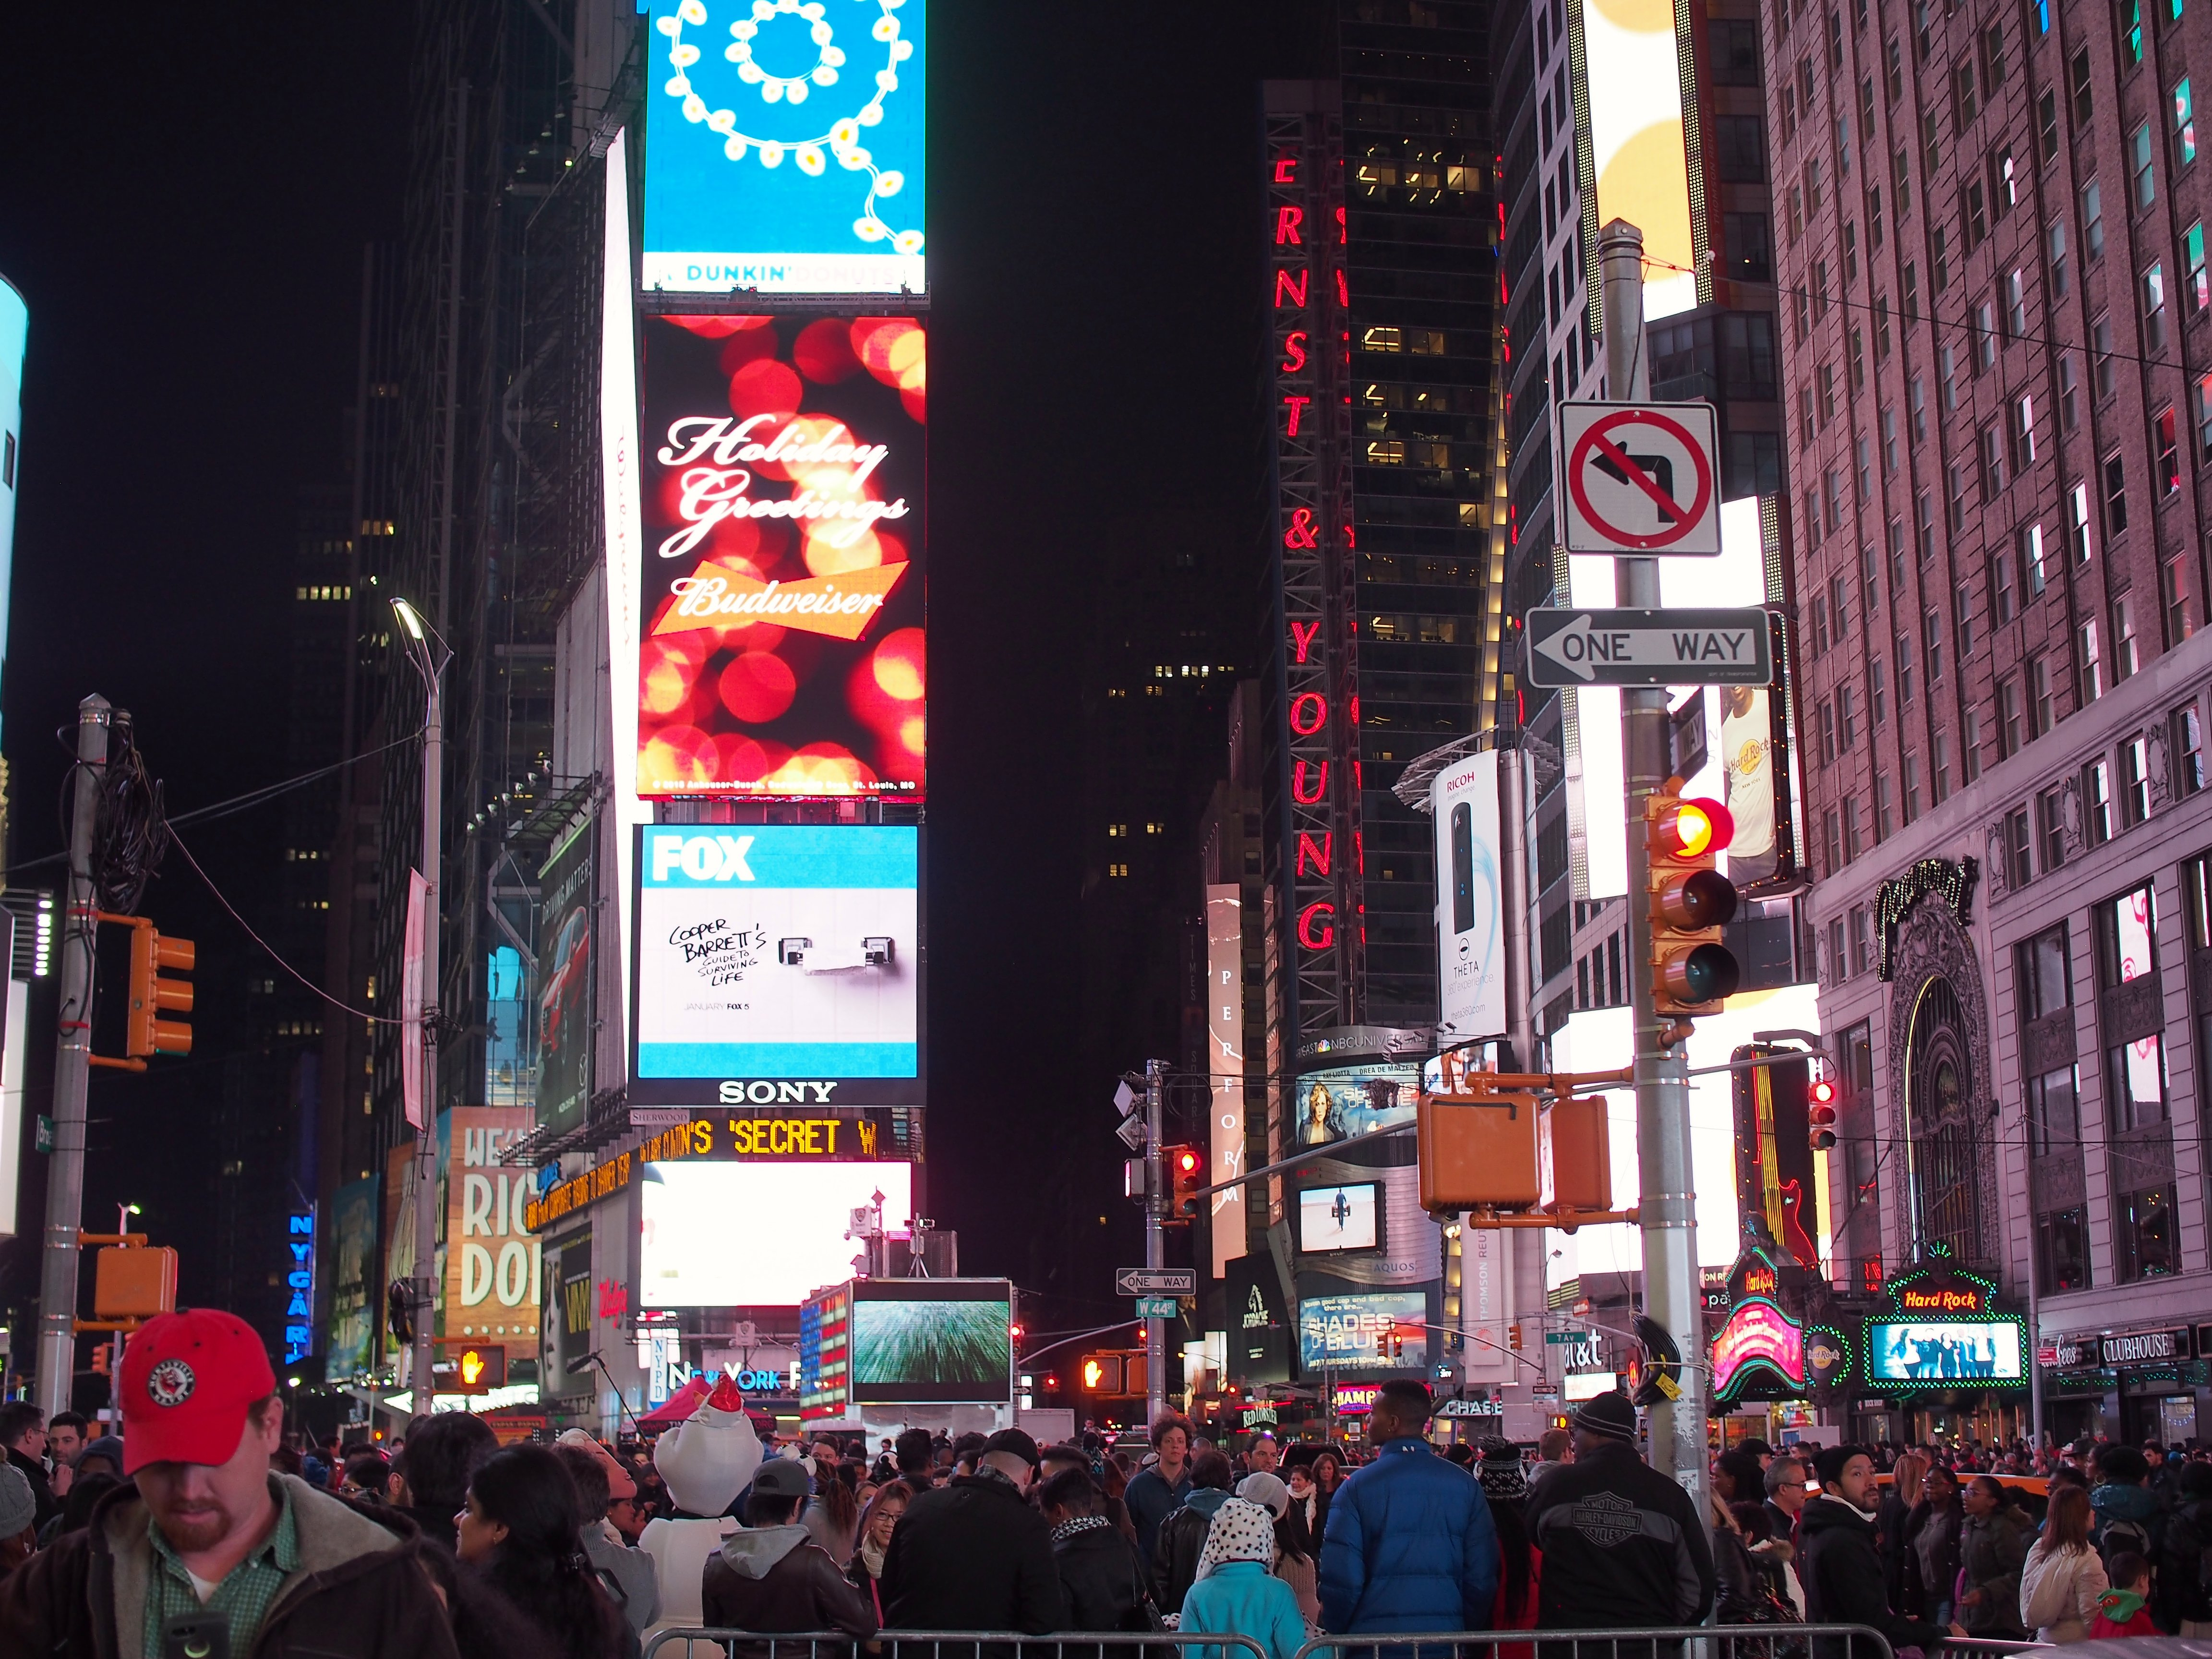 The mandatory Times Square at night, Architecture, City, New york, Night, HQ Photo